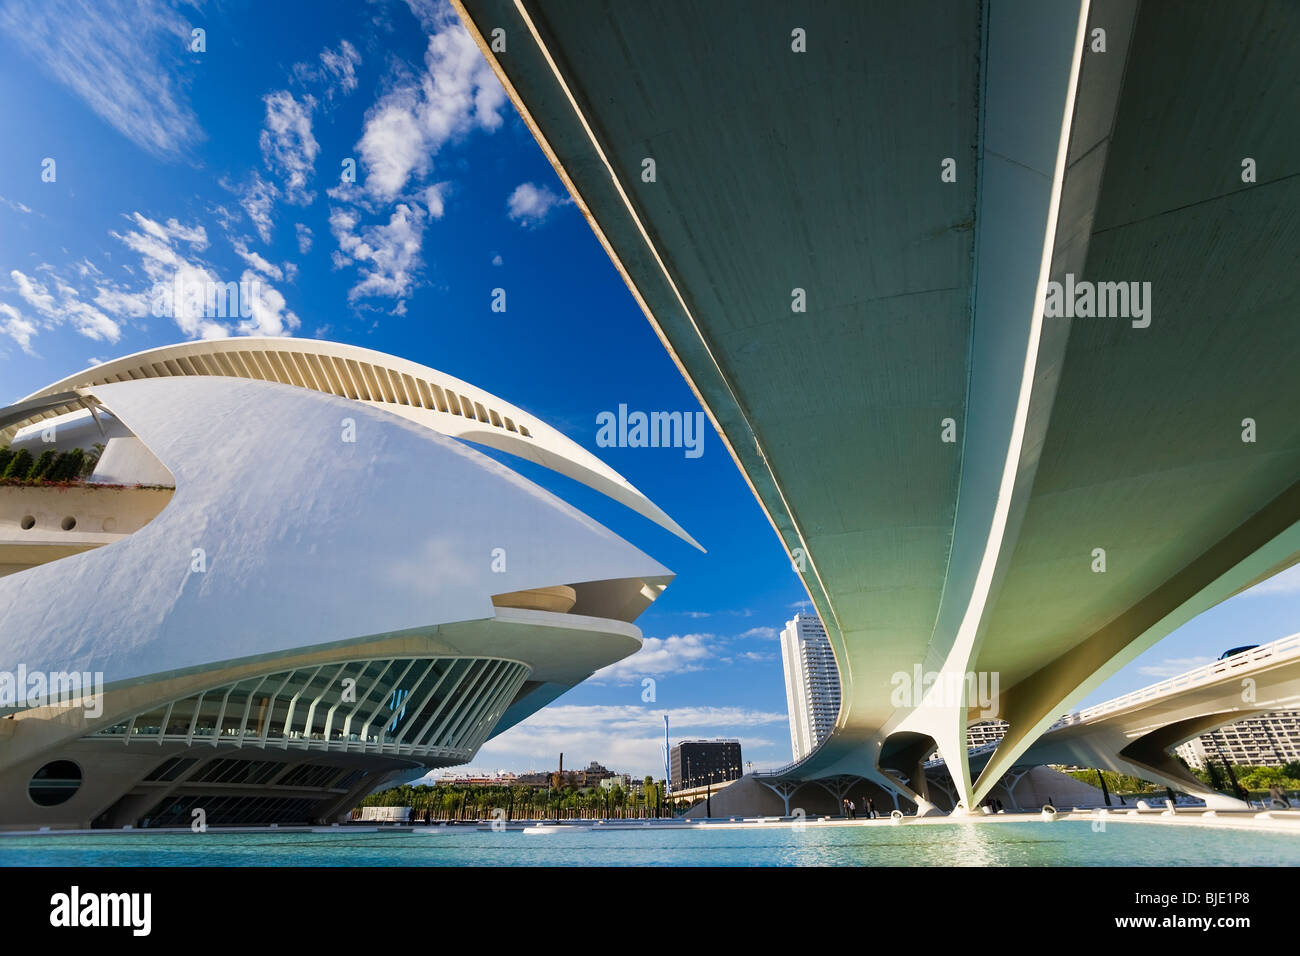 Spain Valencia the City of Arts and Sciences building - Stock Image